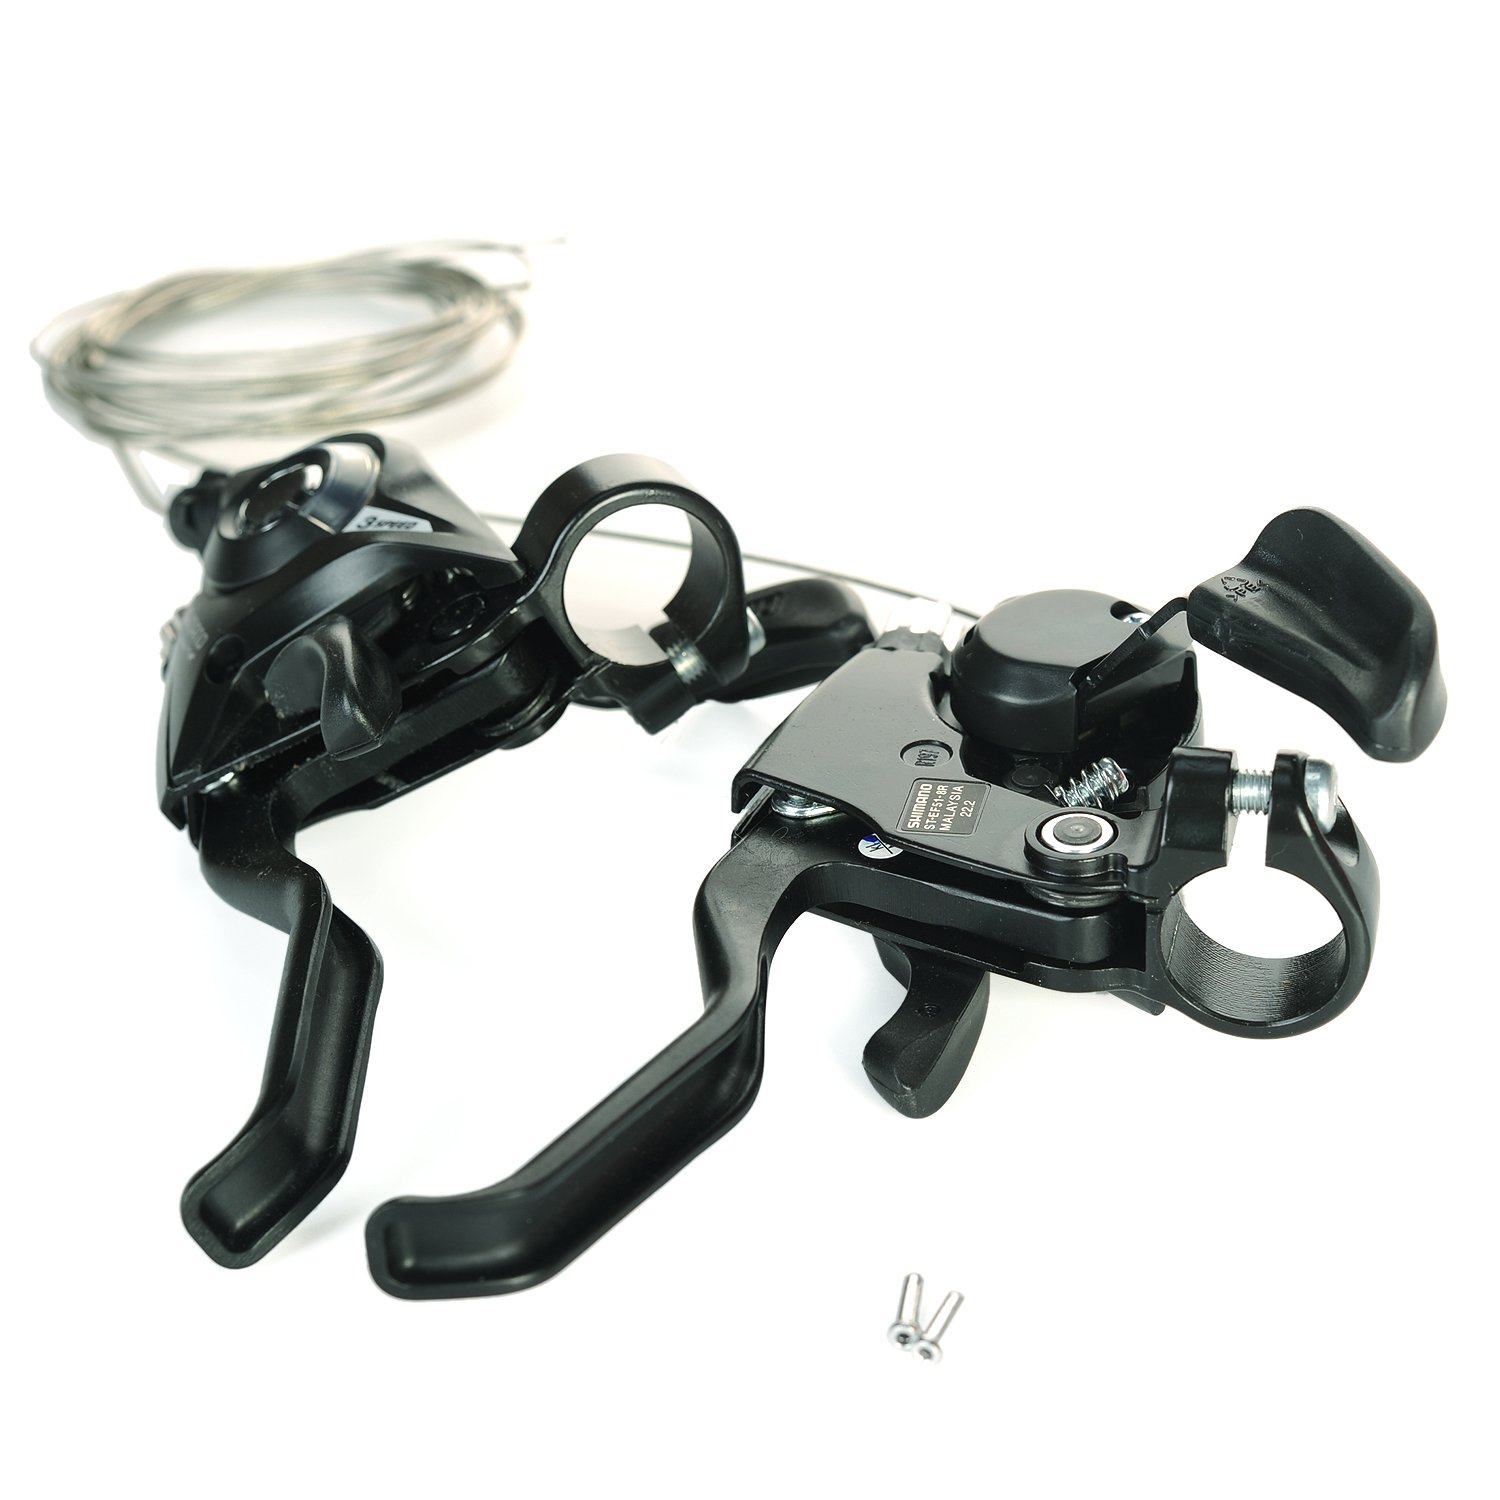 SHIMANO ST-EF51 Brake & Shifter Levers Combo Set 3x8 Pair With Shift Cable And End Caps by SHIMANO (Image #9)